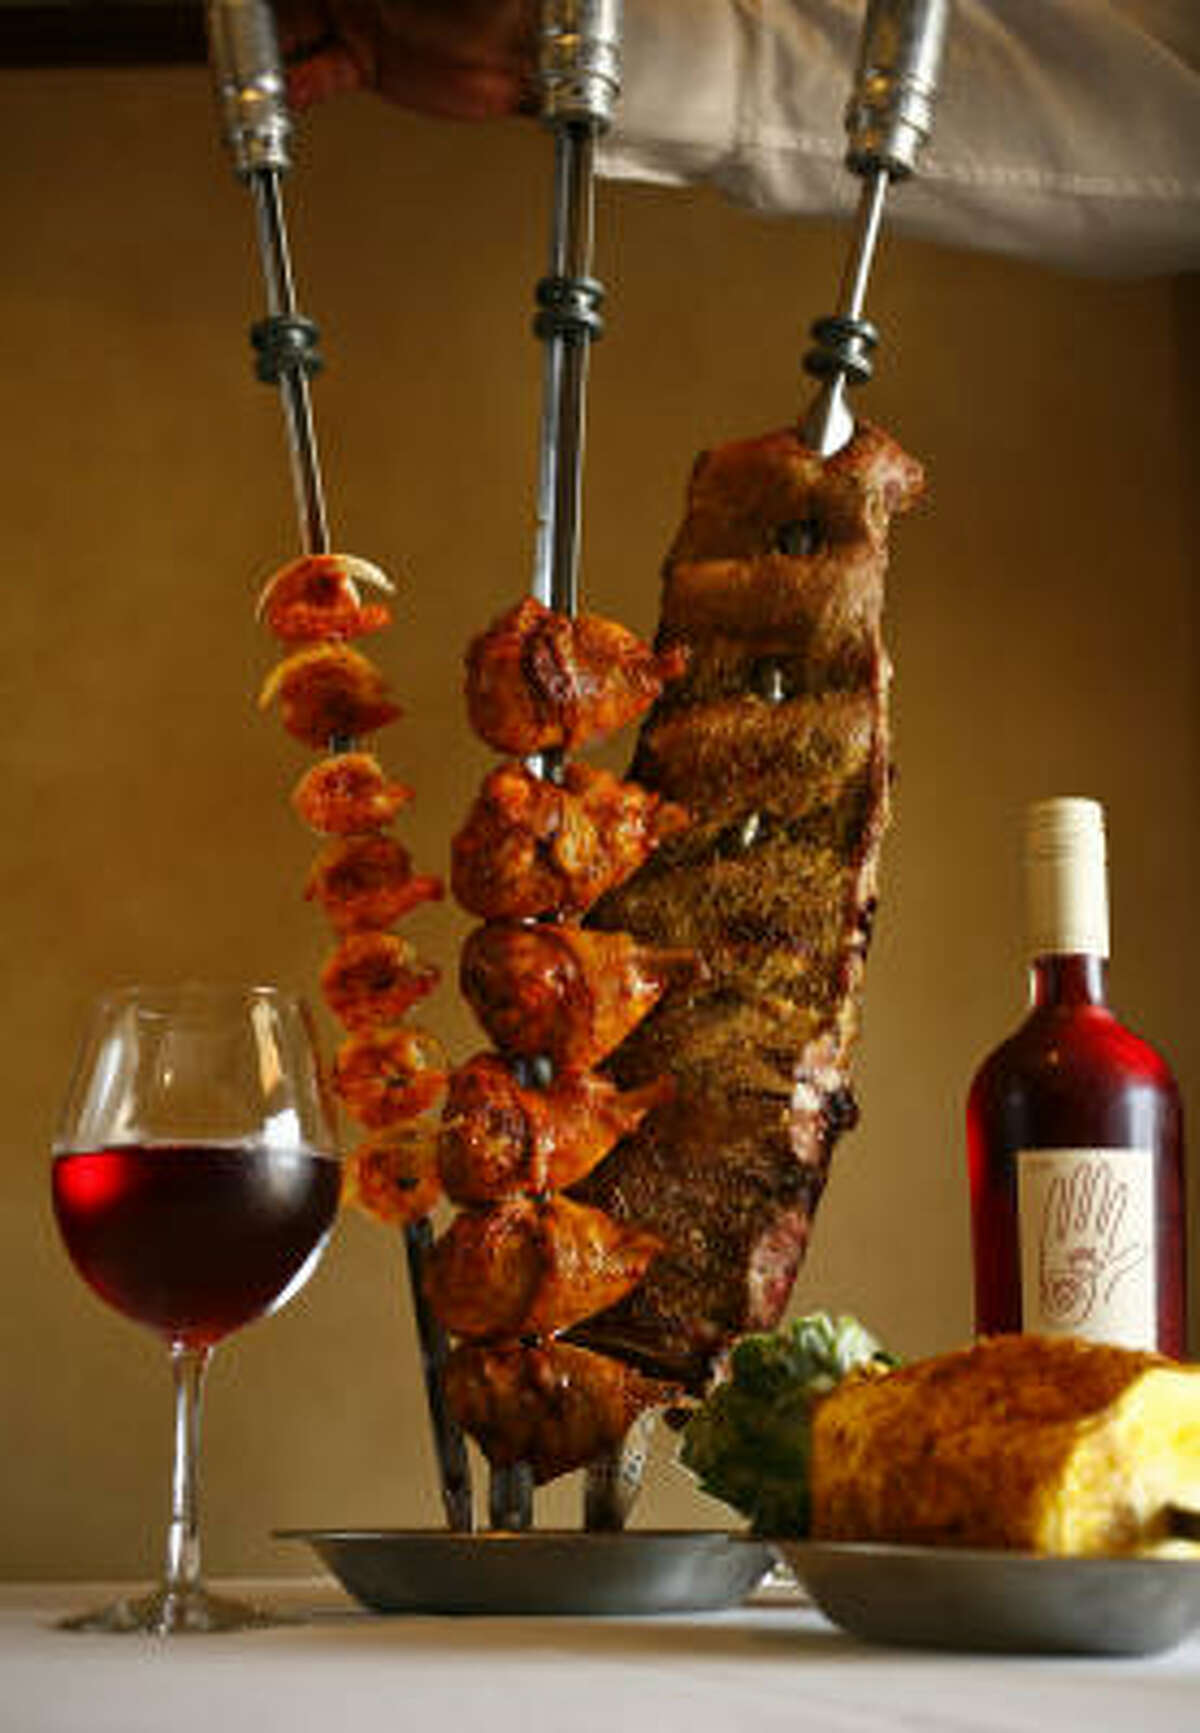 The Angus Grill Brazilian Steakhouse's menu includes shrimp, chicken legs and pork ribs on skewers with fried pineapple, and Crios Malbec Rosé.